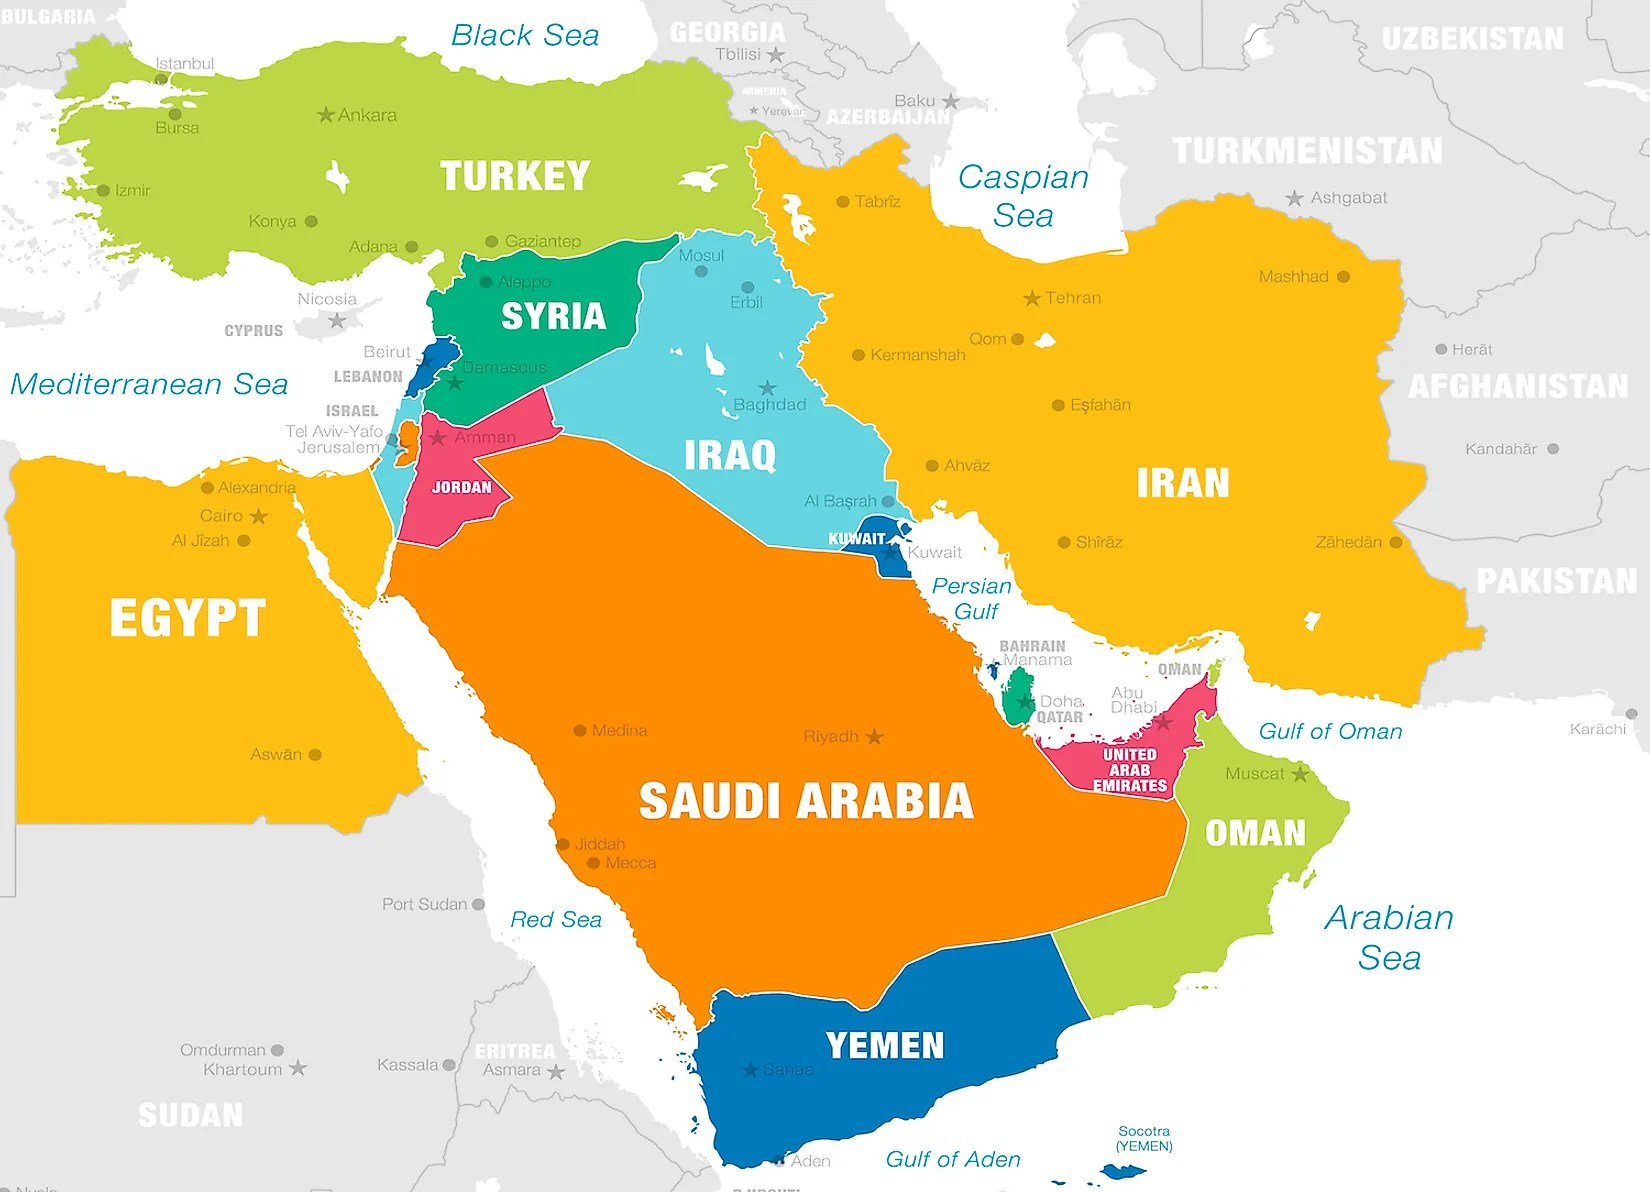 How Many Countries Are There In The Middle East